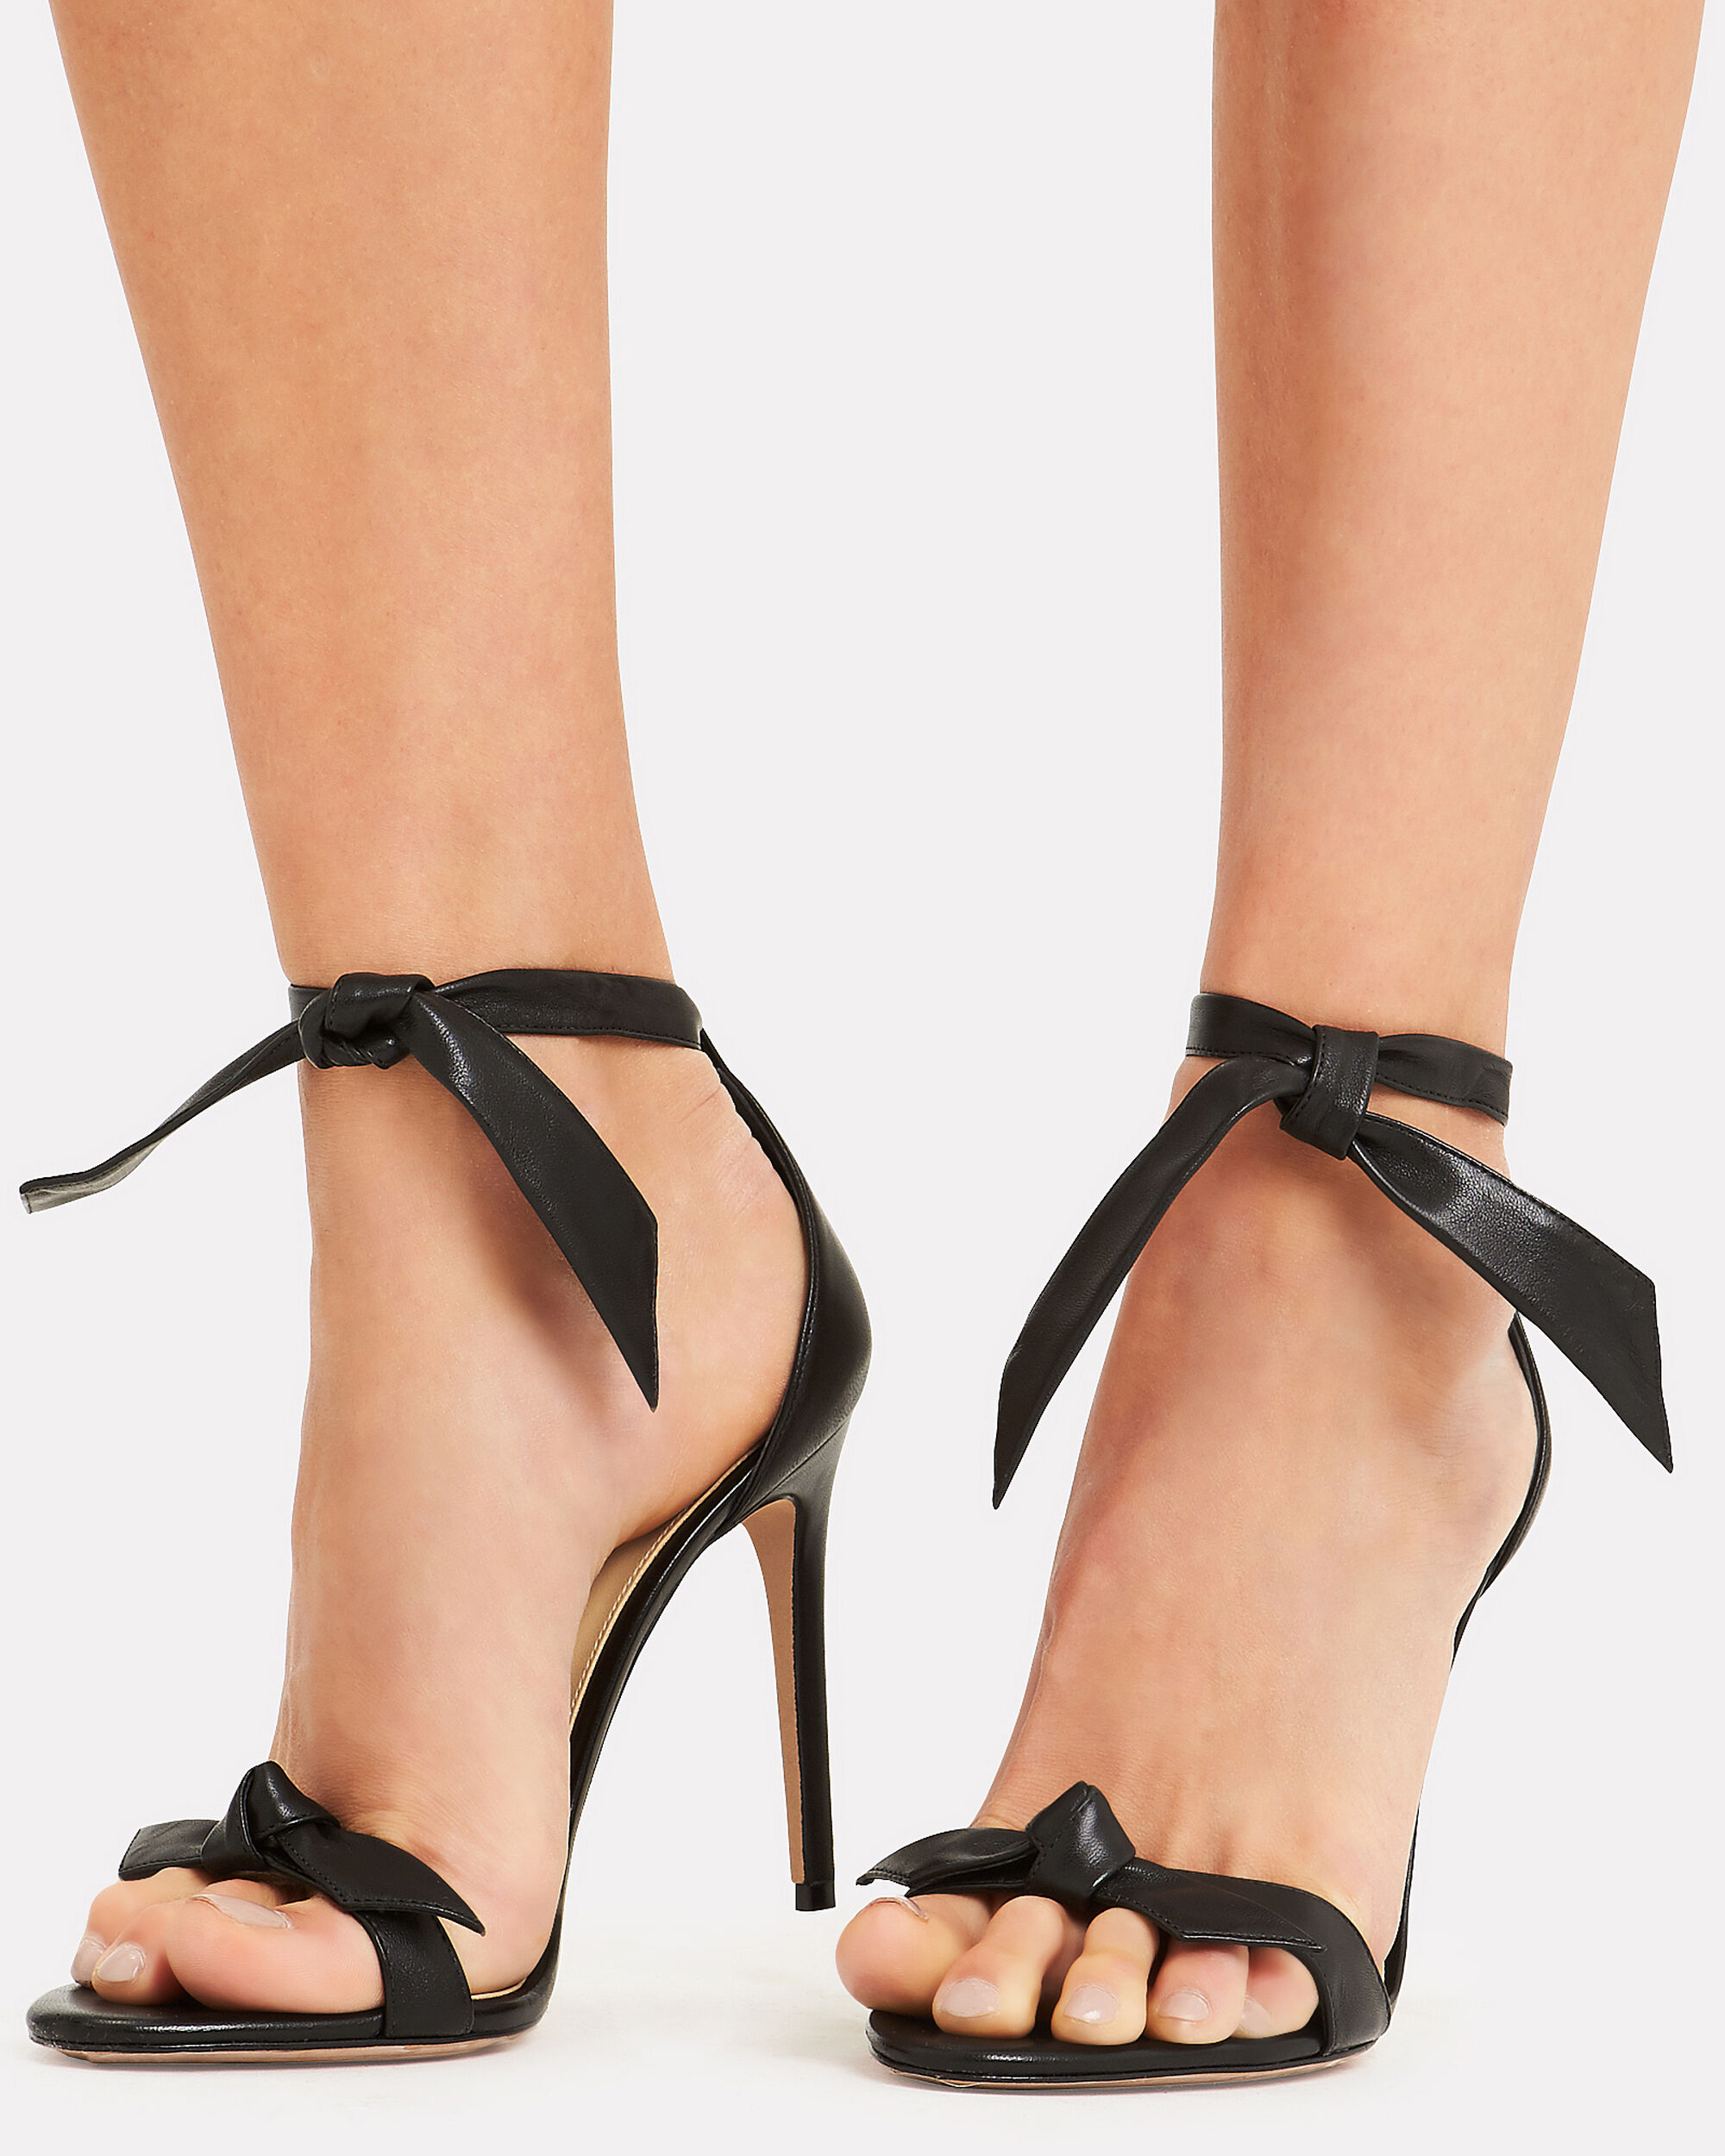 Clarita Double Bow Black Leather High Sandals, BLACK, hi-res